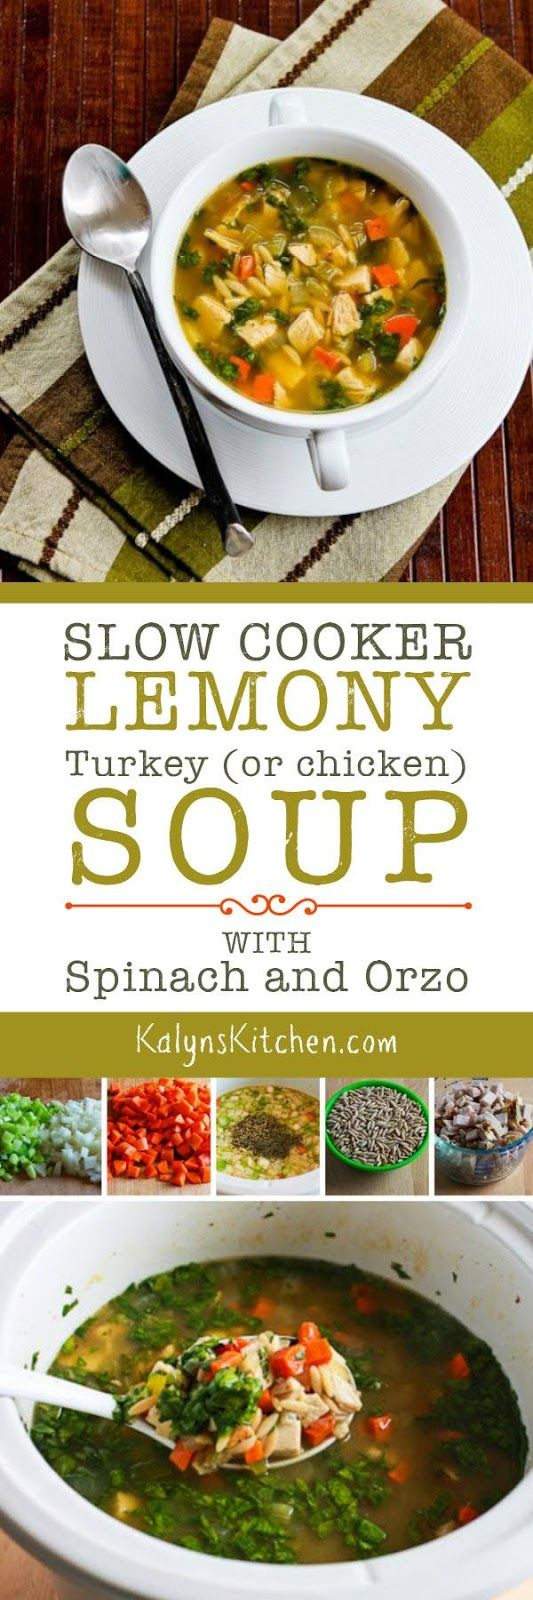 Slow Cooker Lemony Turkey Soup with Spinach and Orzo is am amazing idea for leftover turkey, or make this tasty soup with chicken if you prefer. This recipe is low-glycemic, South Beach Diet friendly, dairy-free, and easy to make, use less orzo or cauilflower rice if you want a soup that's even lower in carbs. [found on KalynsKitchen.com]